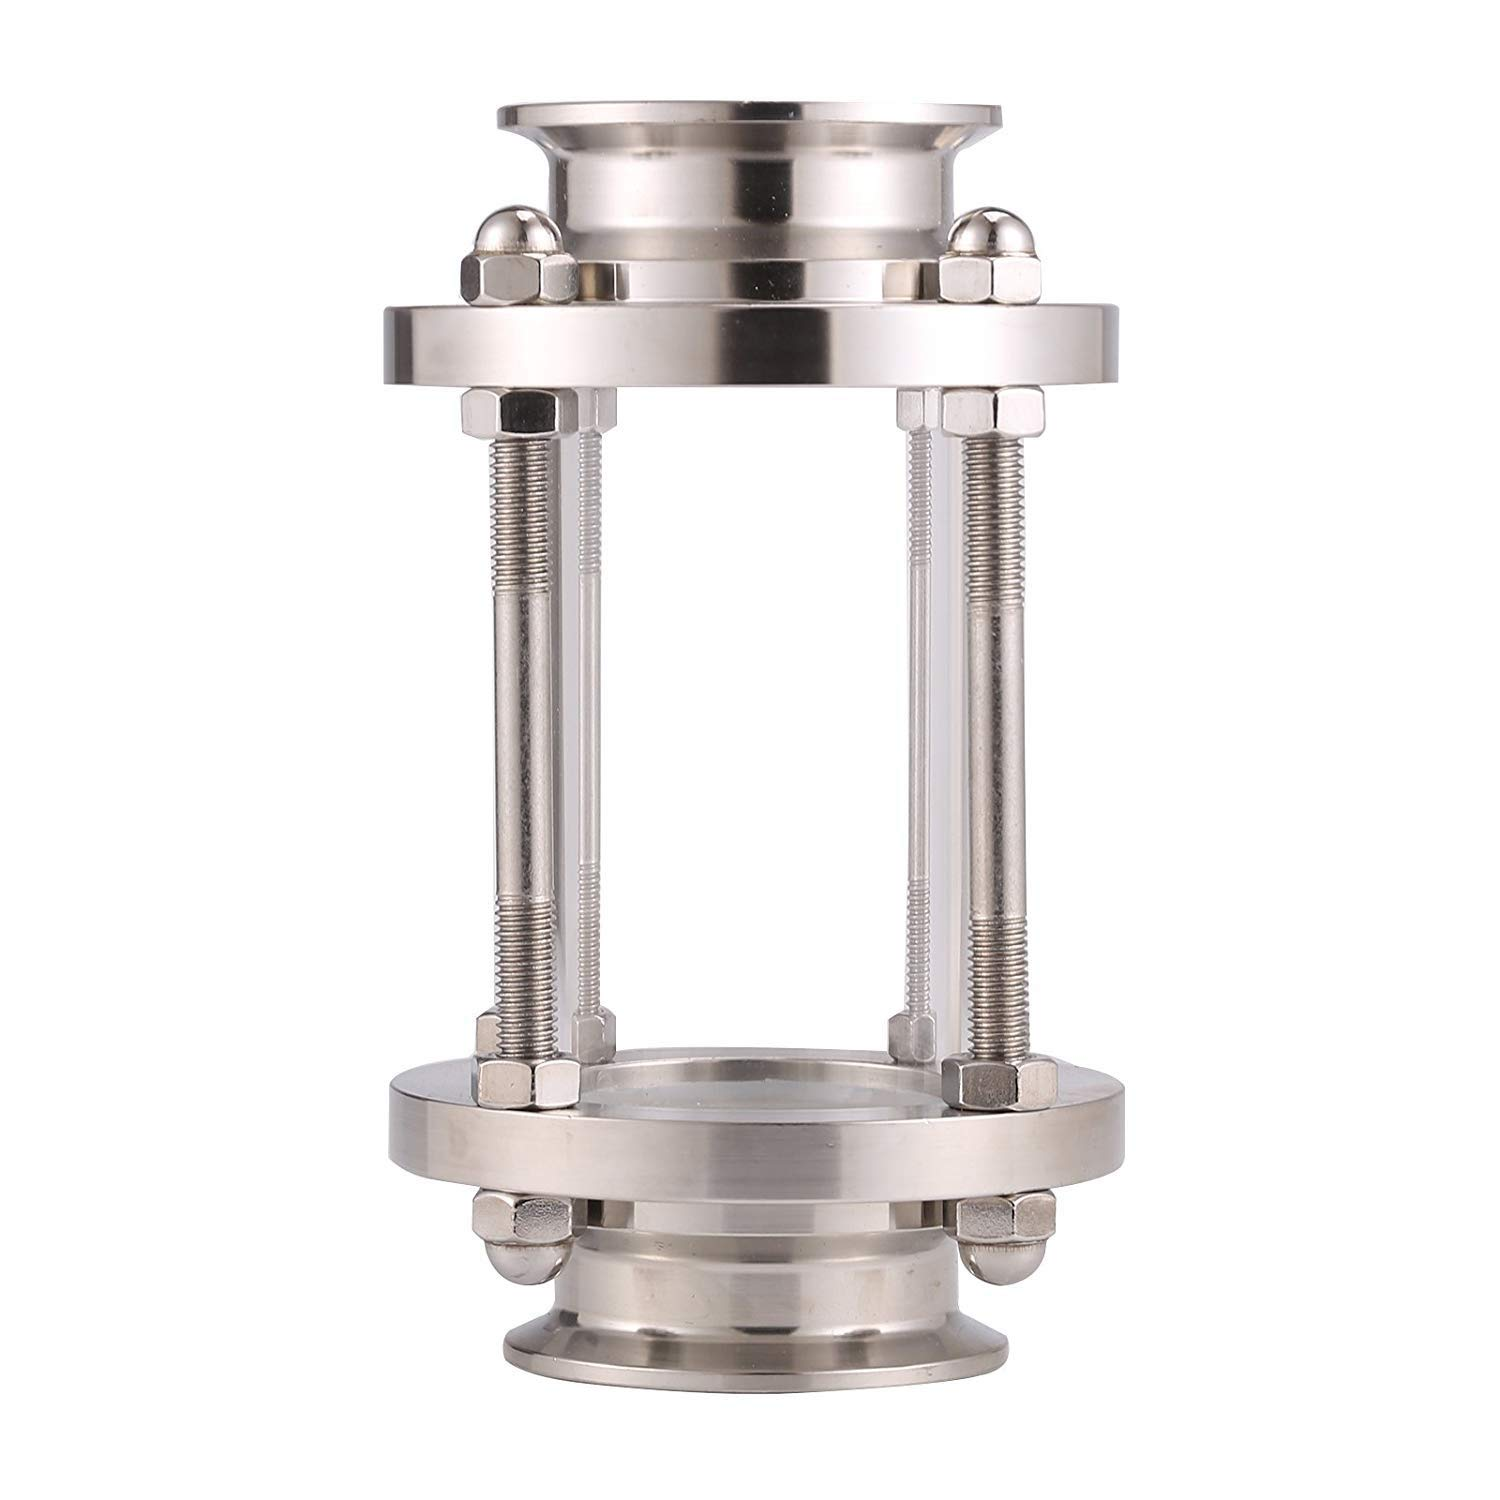 1.5 Sanitary Sight Glass Stainless Steel 304 in-Line Sight Glass with Clamp End Flow Pipe OD 38mm Flow Sanitary Straight Sight Glass Tri-clamp